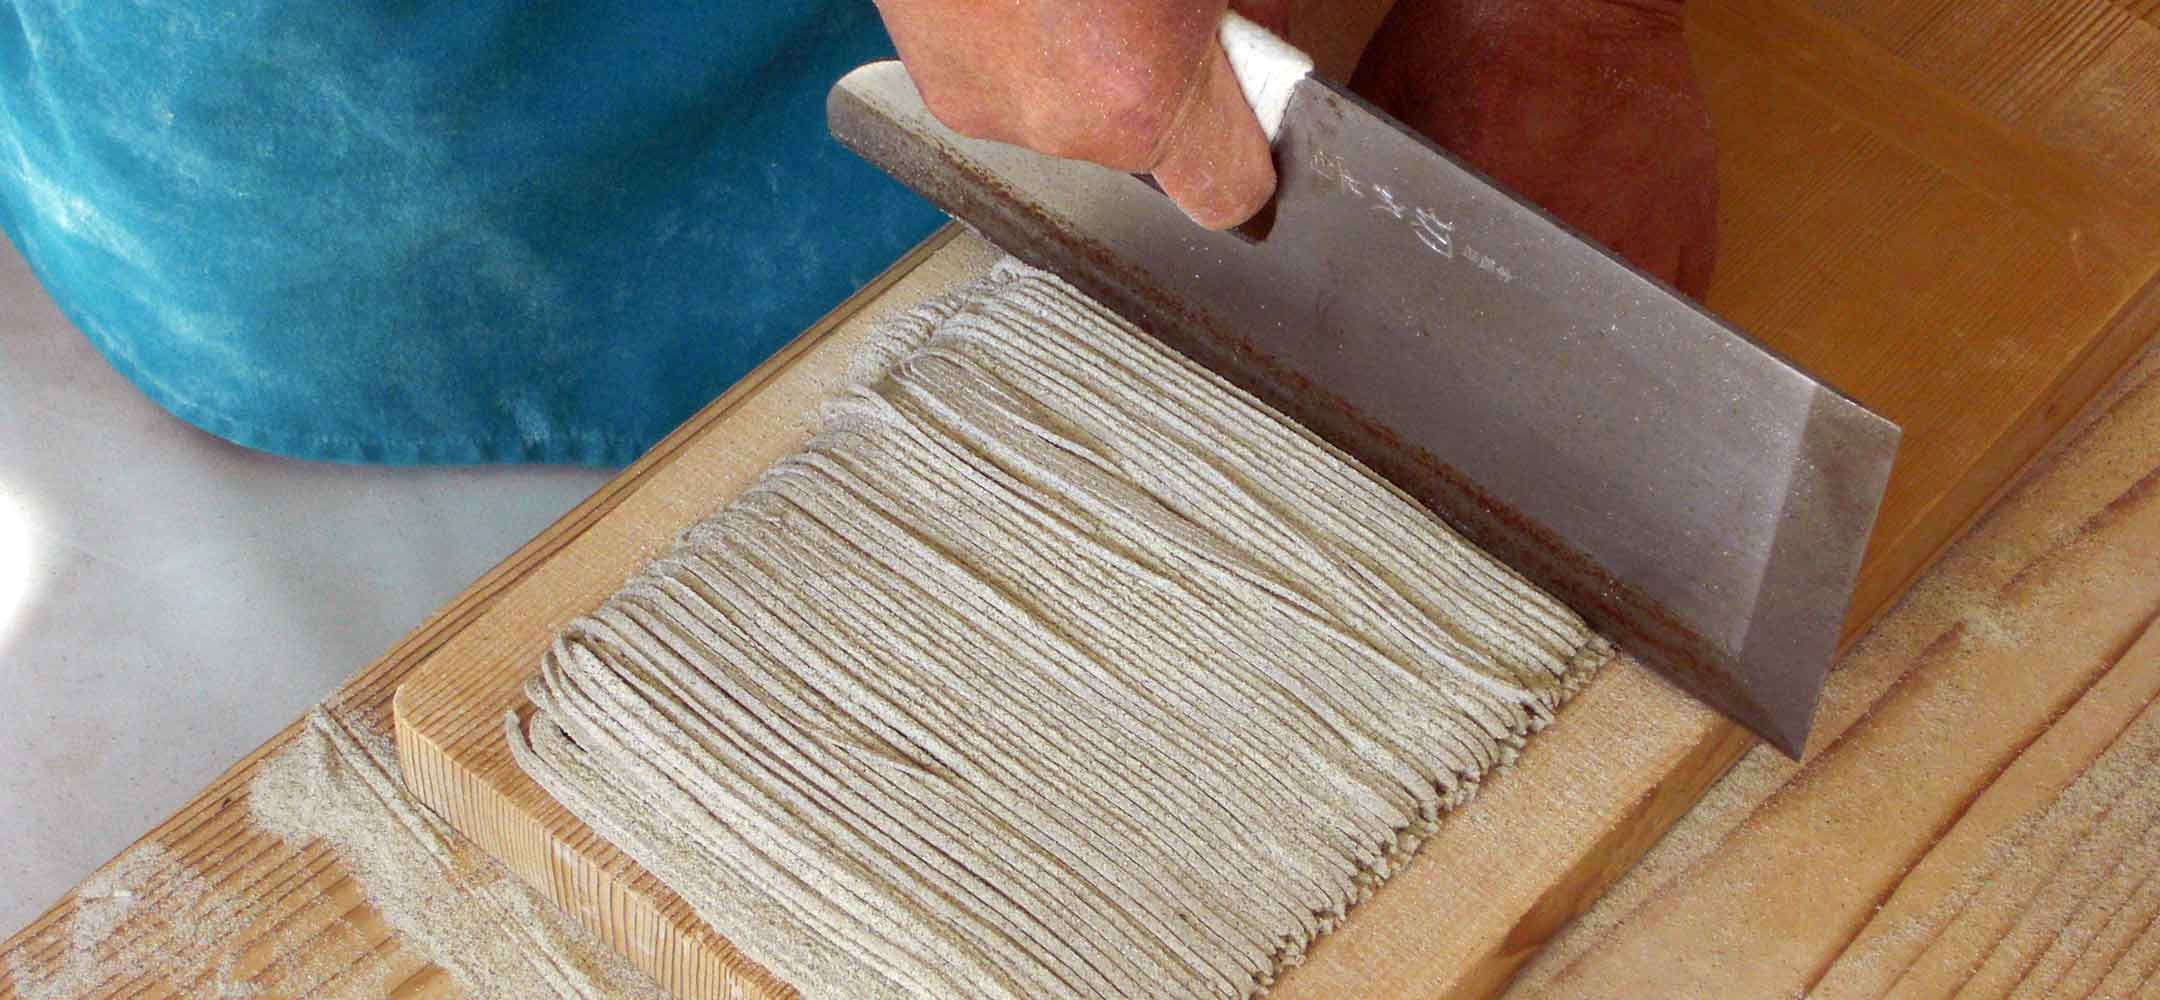 Soba noodle making experience japan inside japan tours for How to make fishing noodles